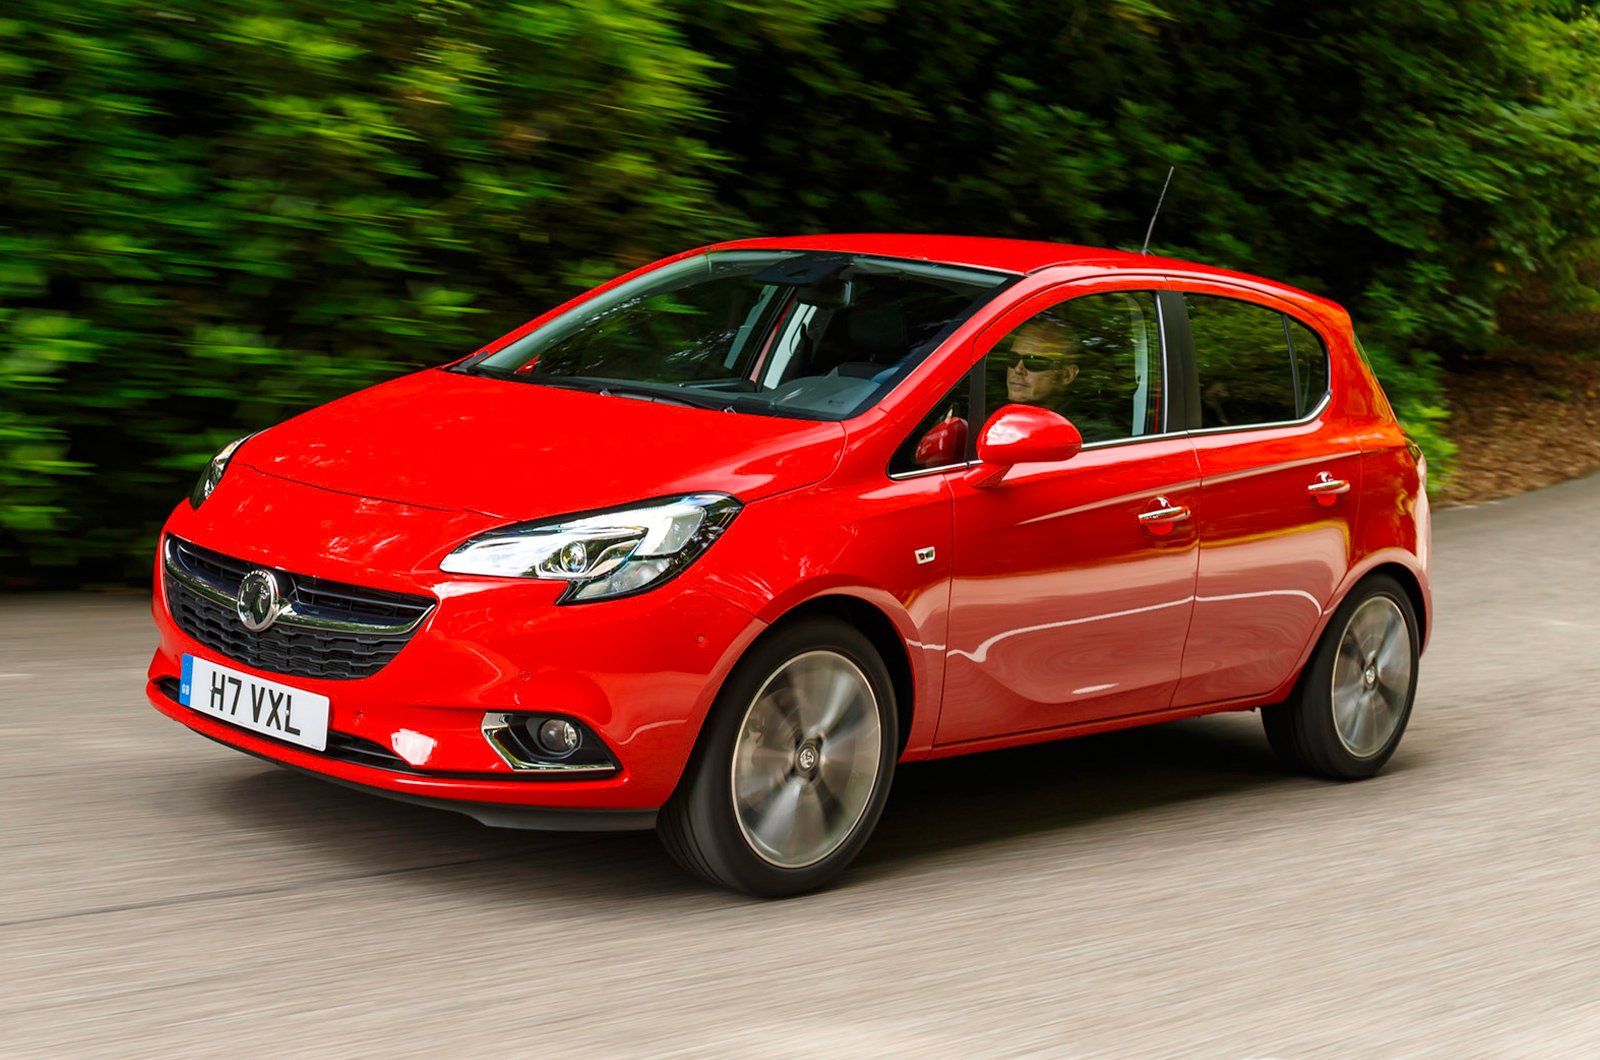 2014 vauxhall corsa 1 0t first drive review autocar. Black Bedroom Furniture Sets. Home Design Ideas